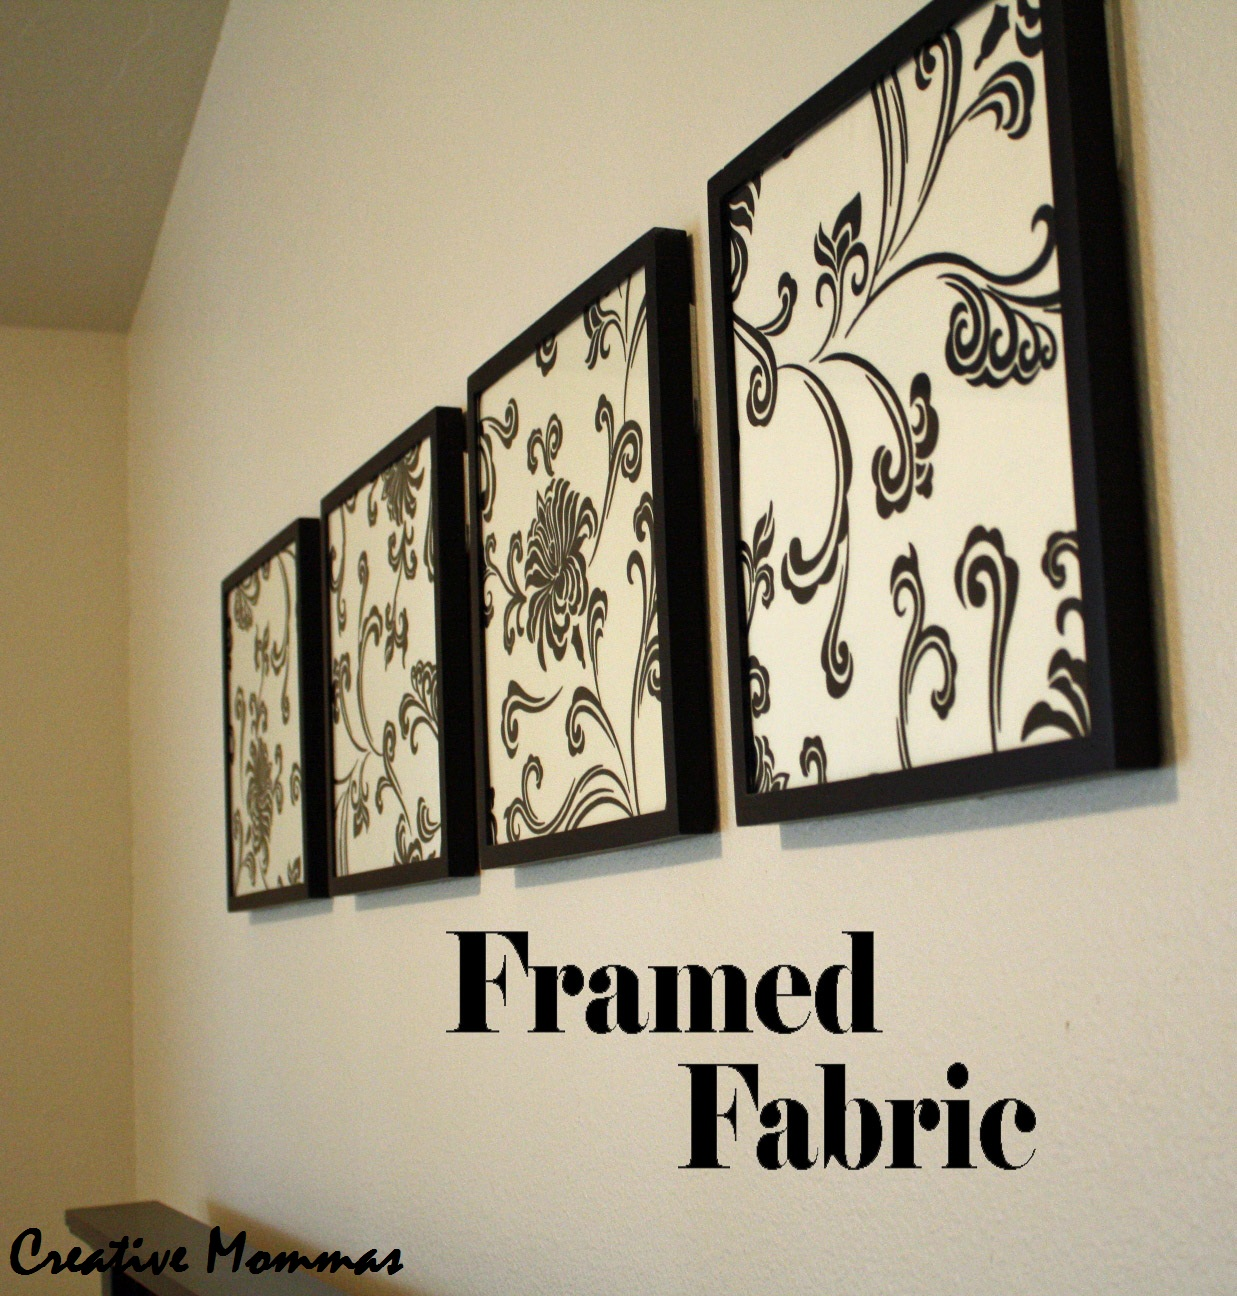 Wall Decor With Cloth : Creative mommas framed fabric wall decor